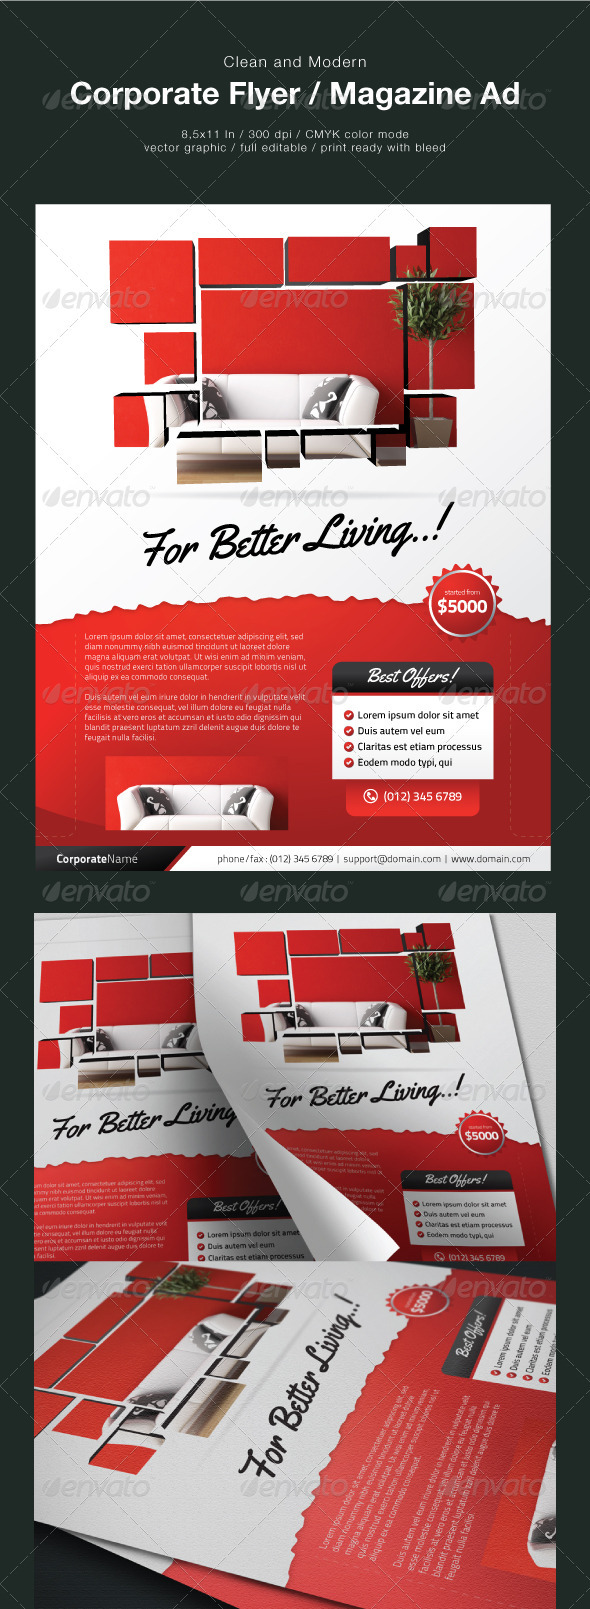 Clean Corporate Flyer / Magazine Ad - Corporate Flyers